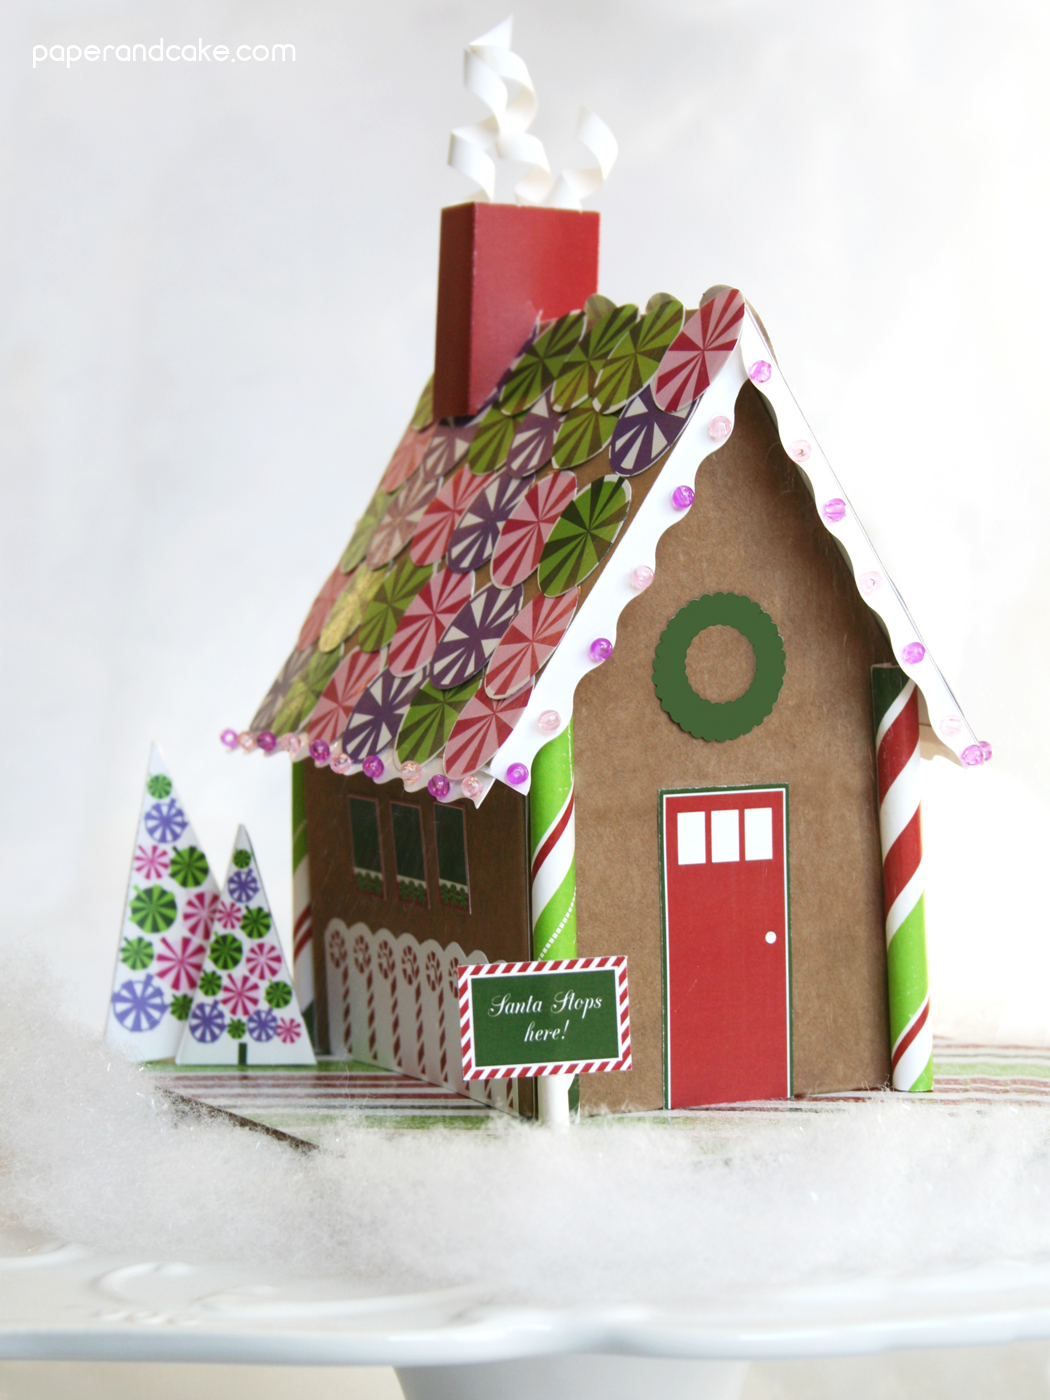 Gingerbread House Cookies  Paper and Cake Paper and Cake